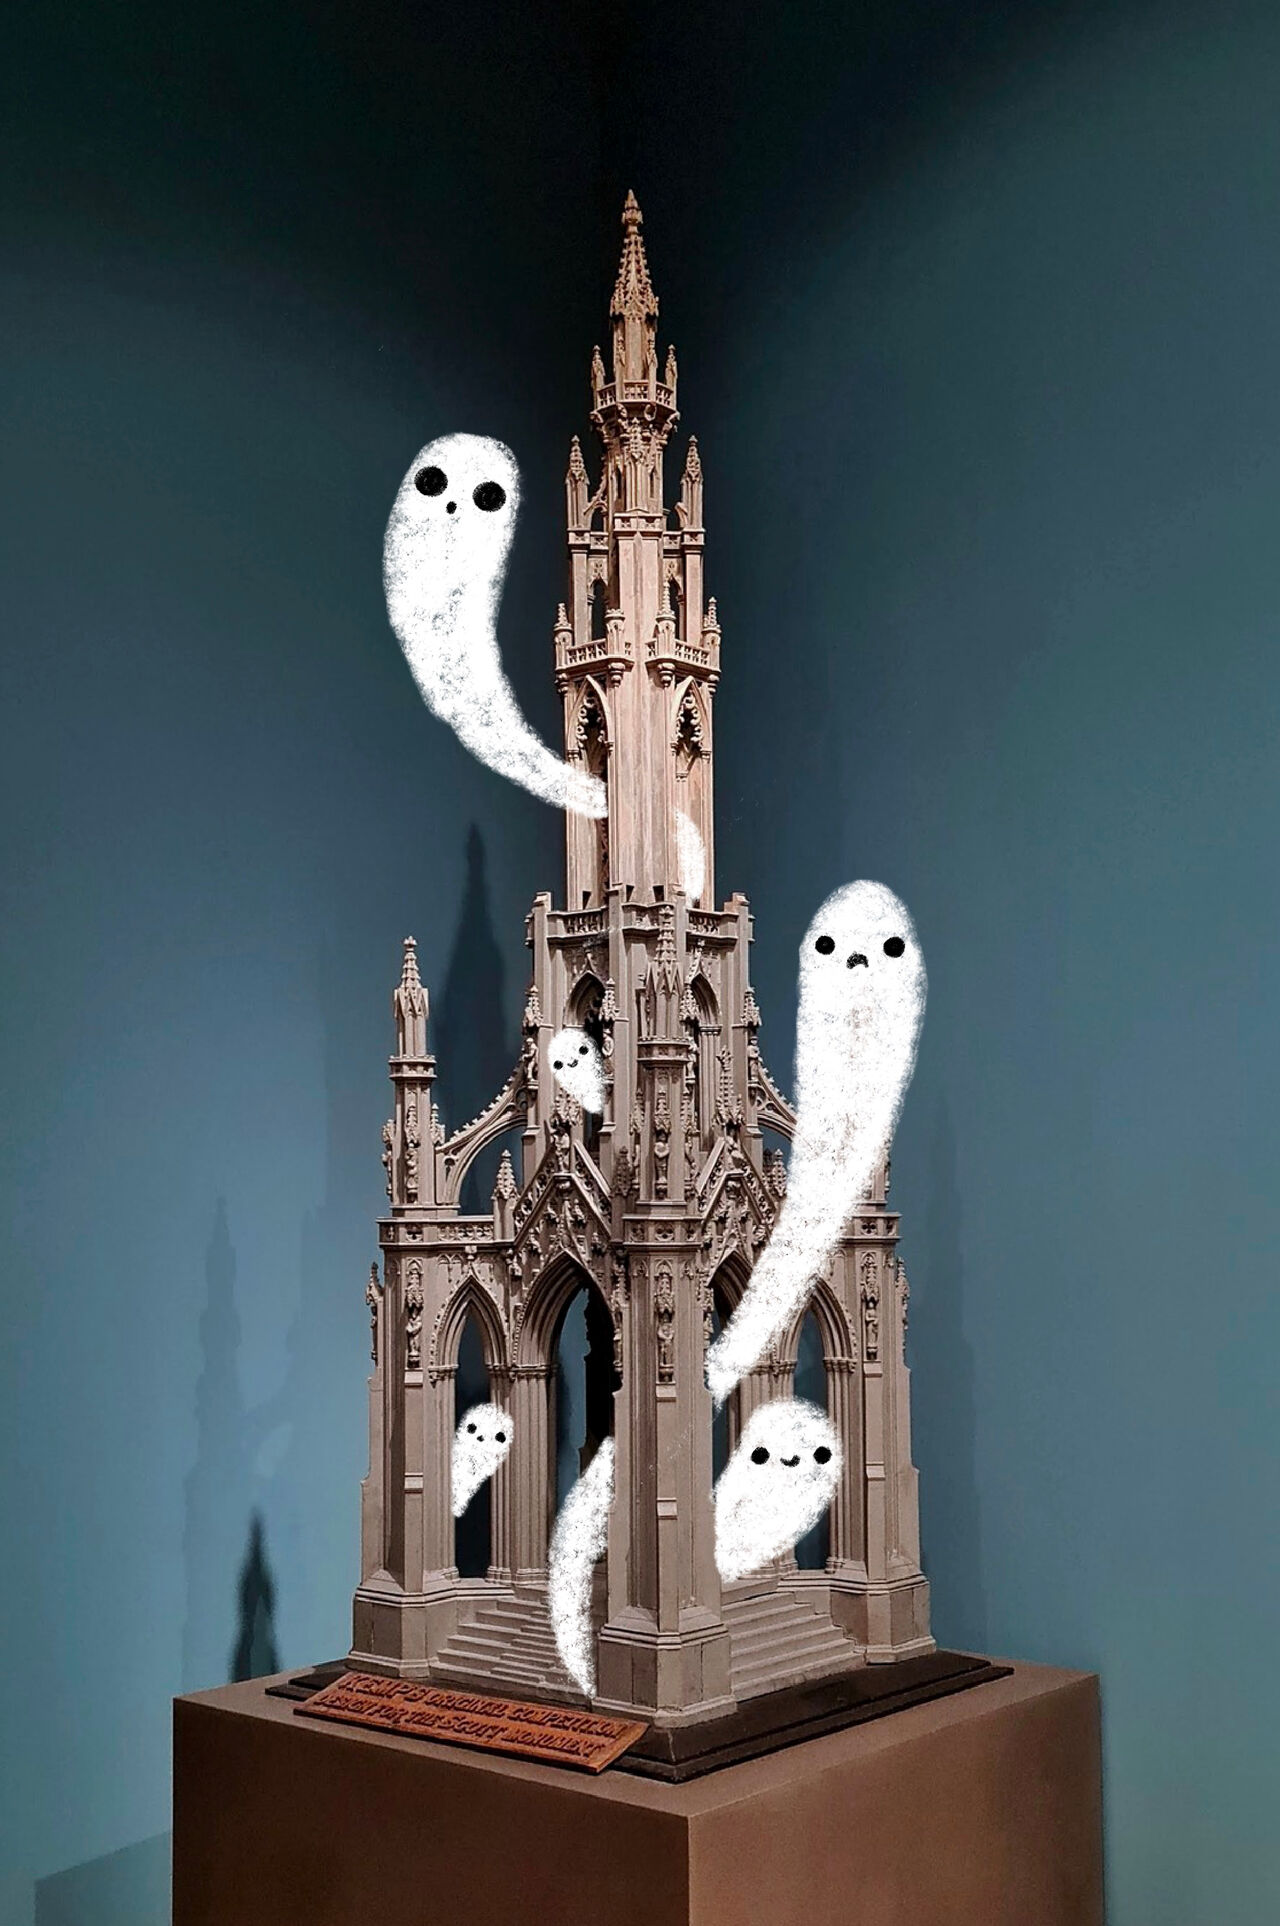 Photo of the model of the Wallace monument in our galleries with illustrated white ghosts drifting around it.